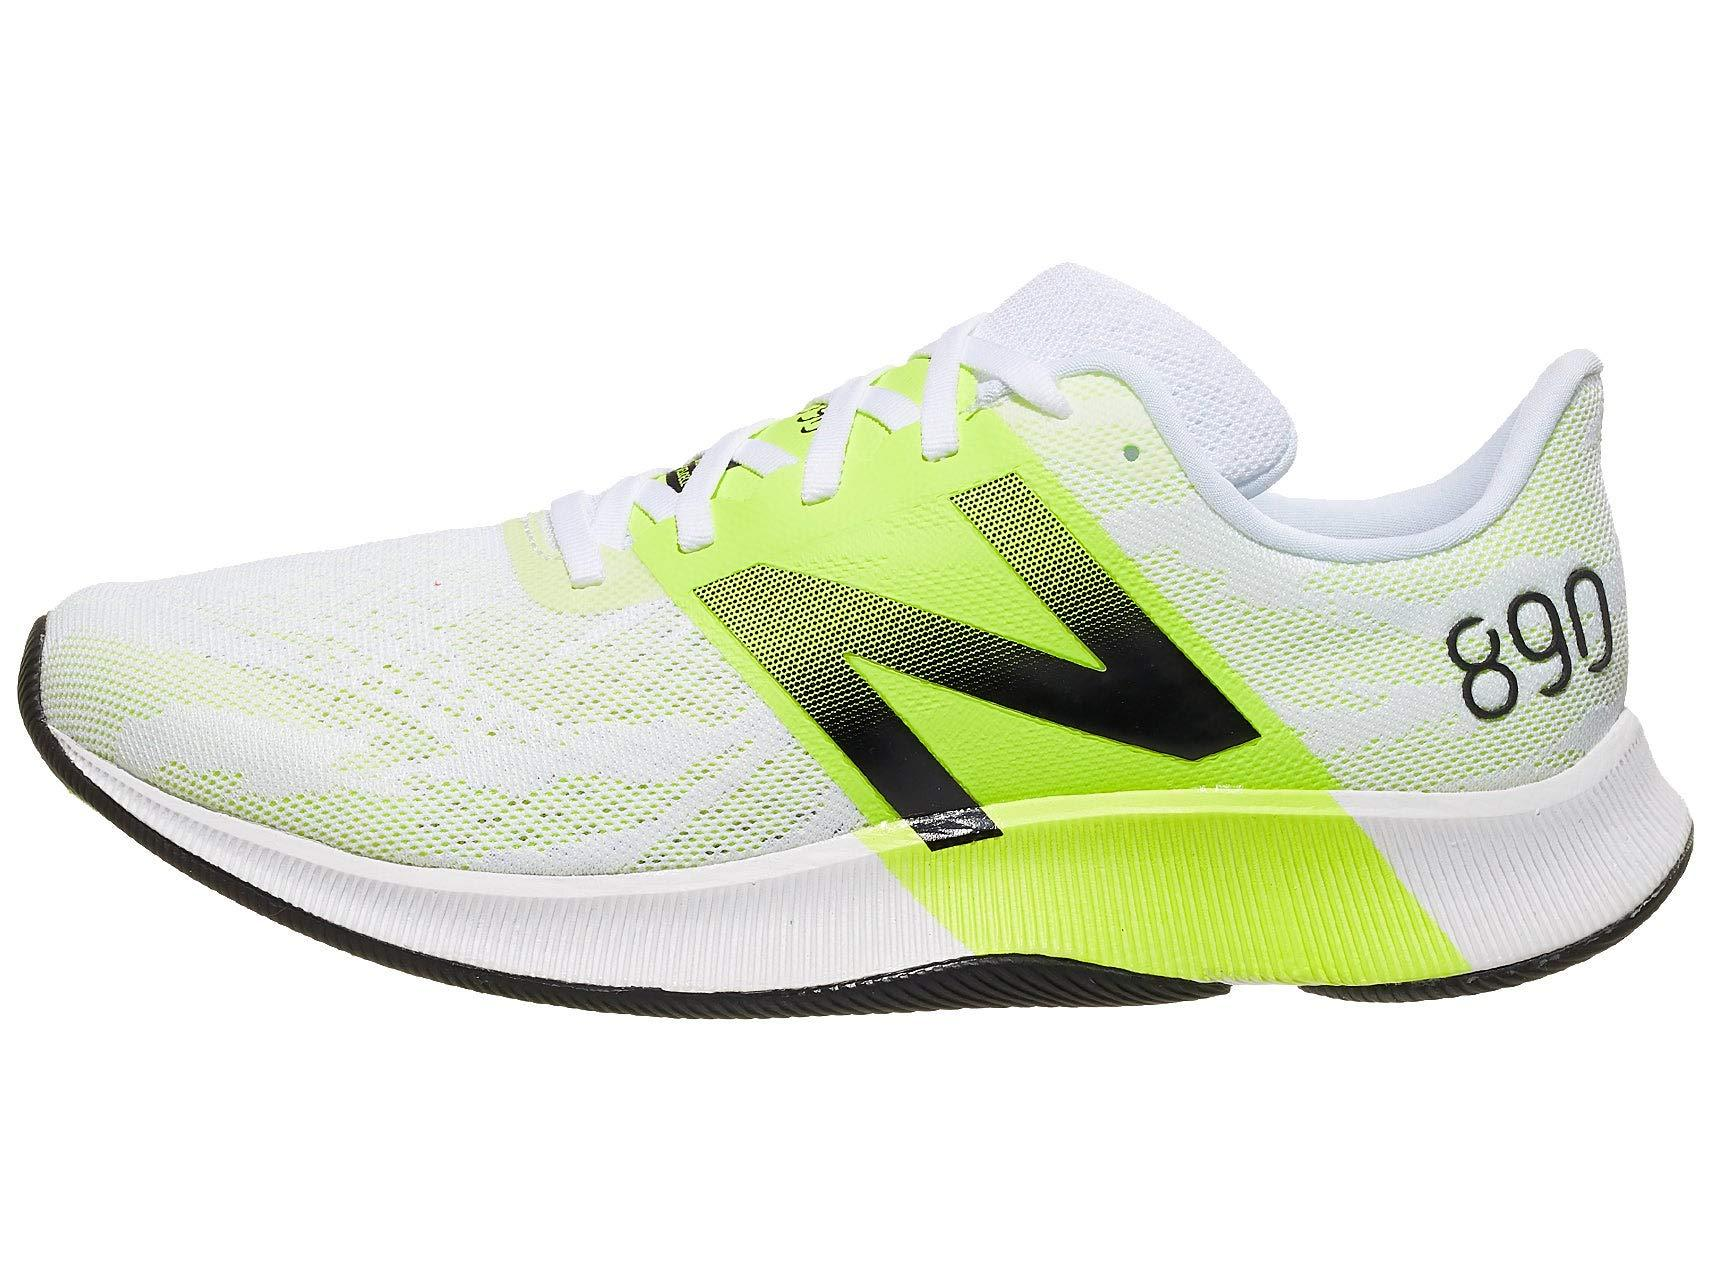 Green New Balance Mens FuelCell Prism Running Shoes Trainers Sneakers